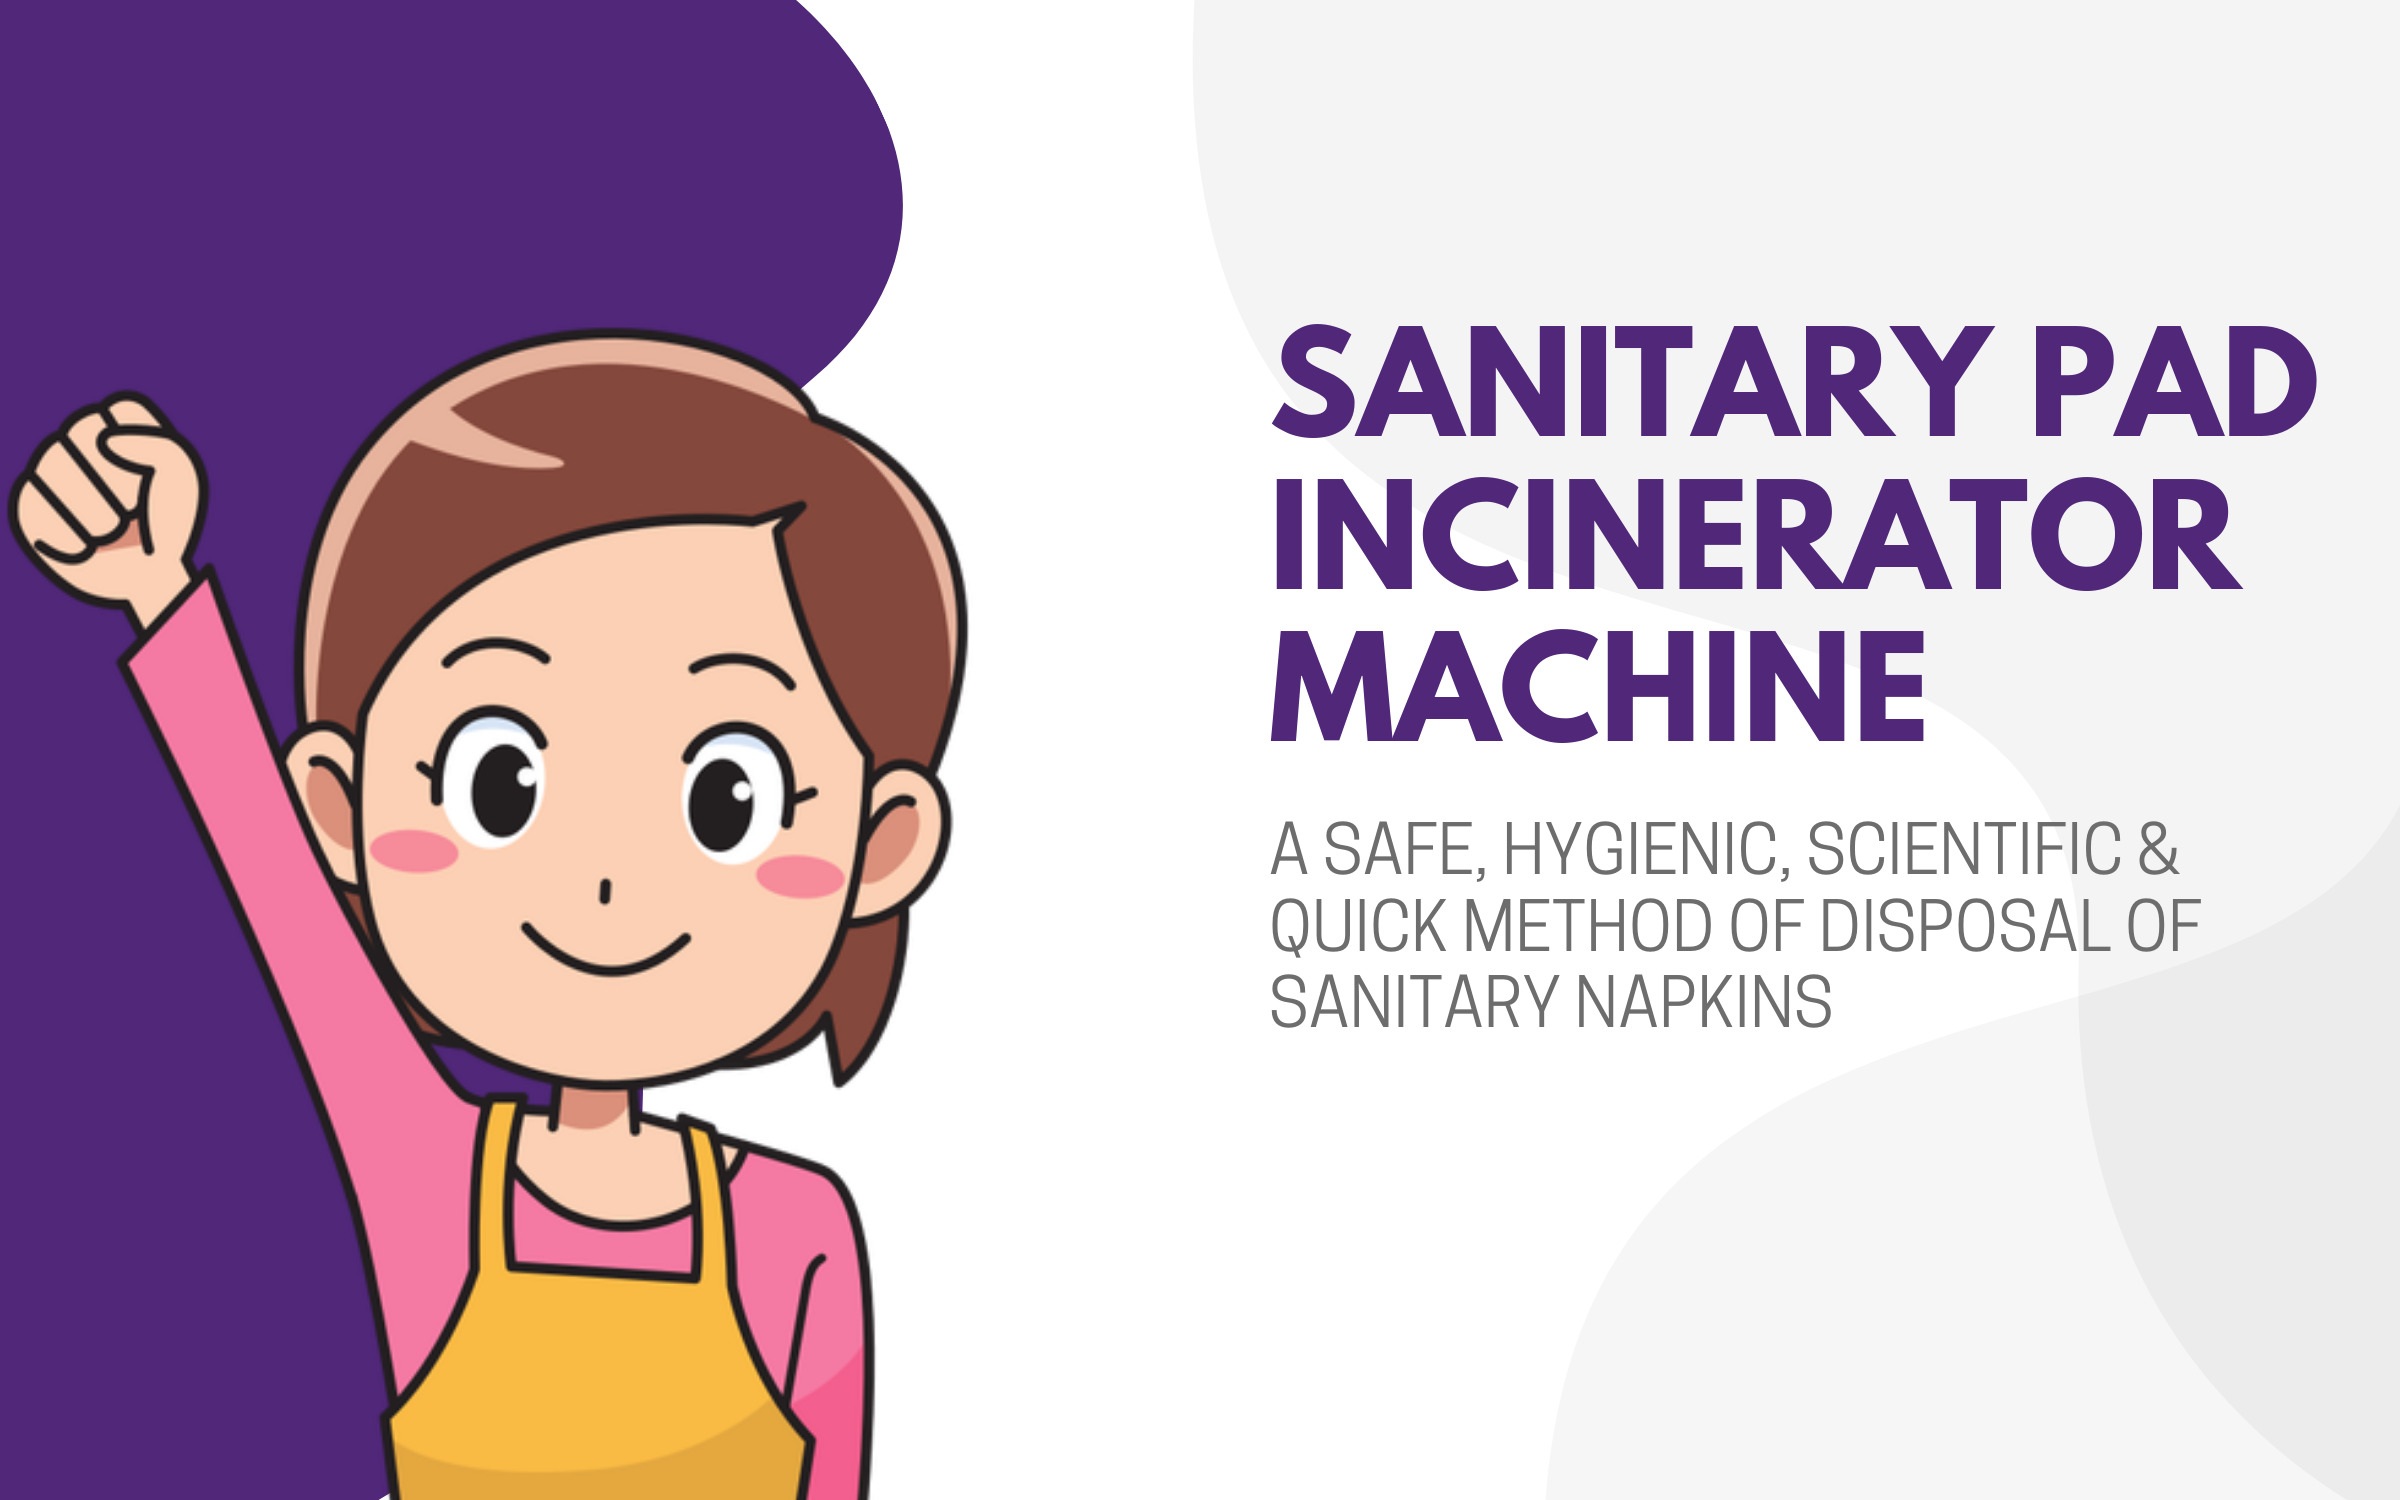 Sanitary pad incinerator machine @Technoinc